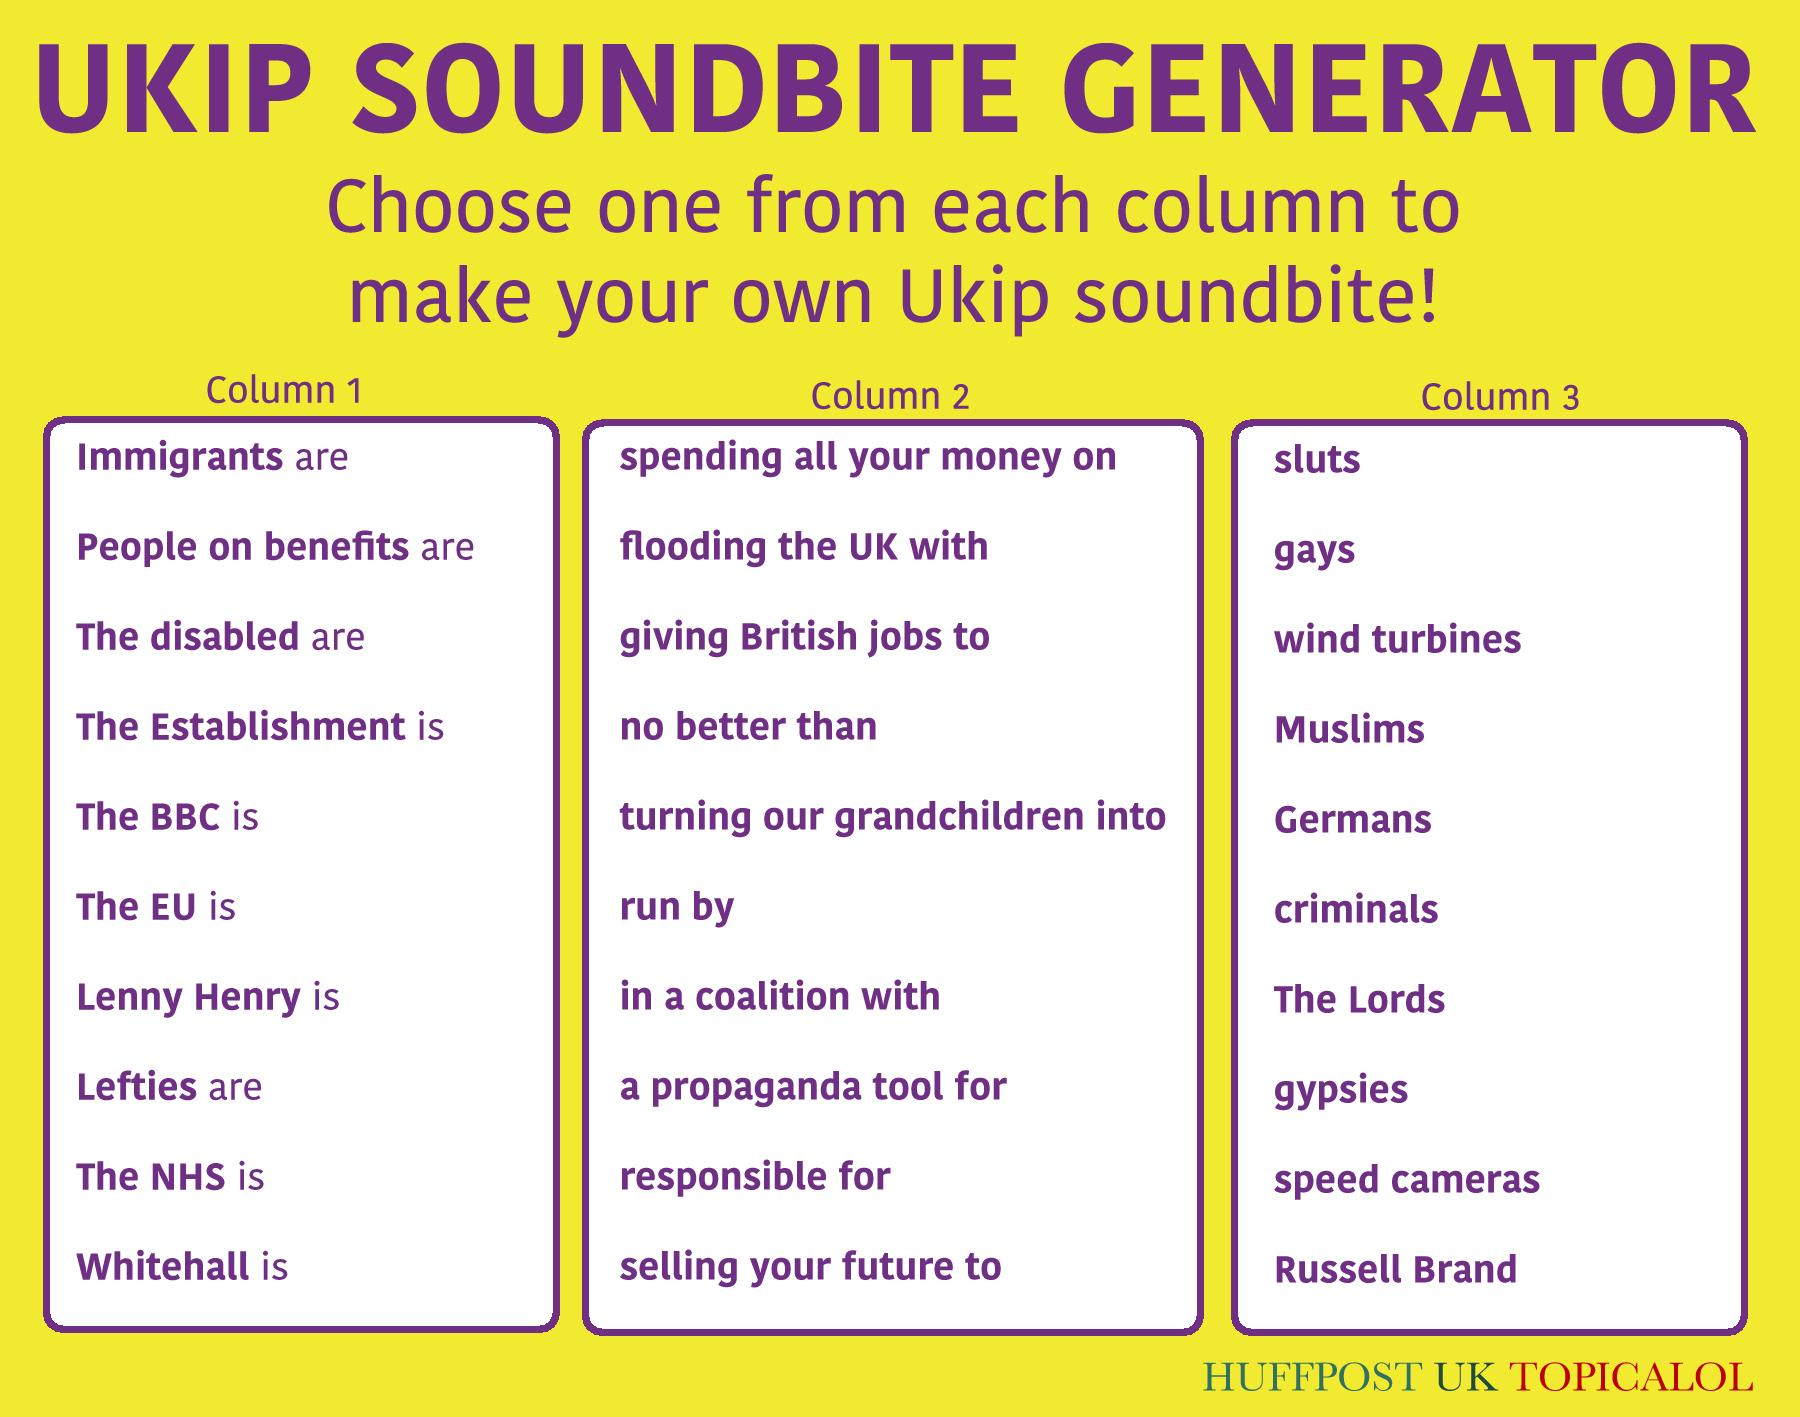 In case you missed it: the UKIP soundbite generator (by @Jason_Spacey & me for @huffpostukcom) http://t.co/1l7zcU3pLV http://t.co/h1JWCLJcUy